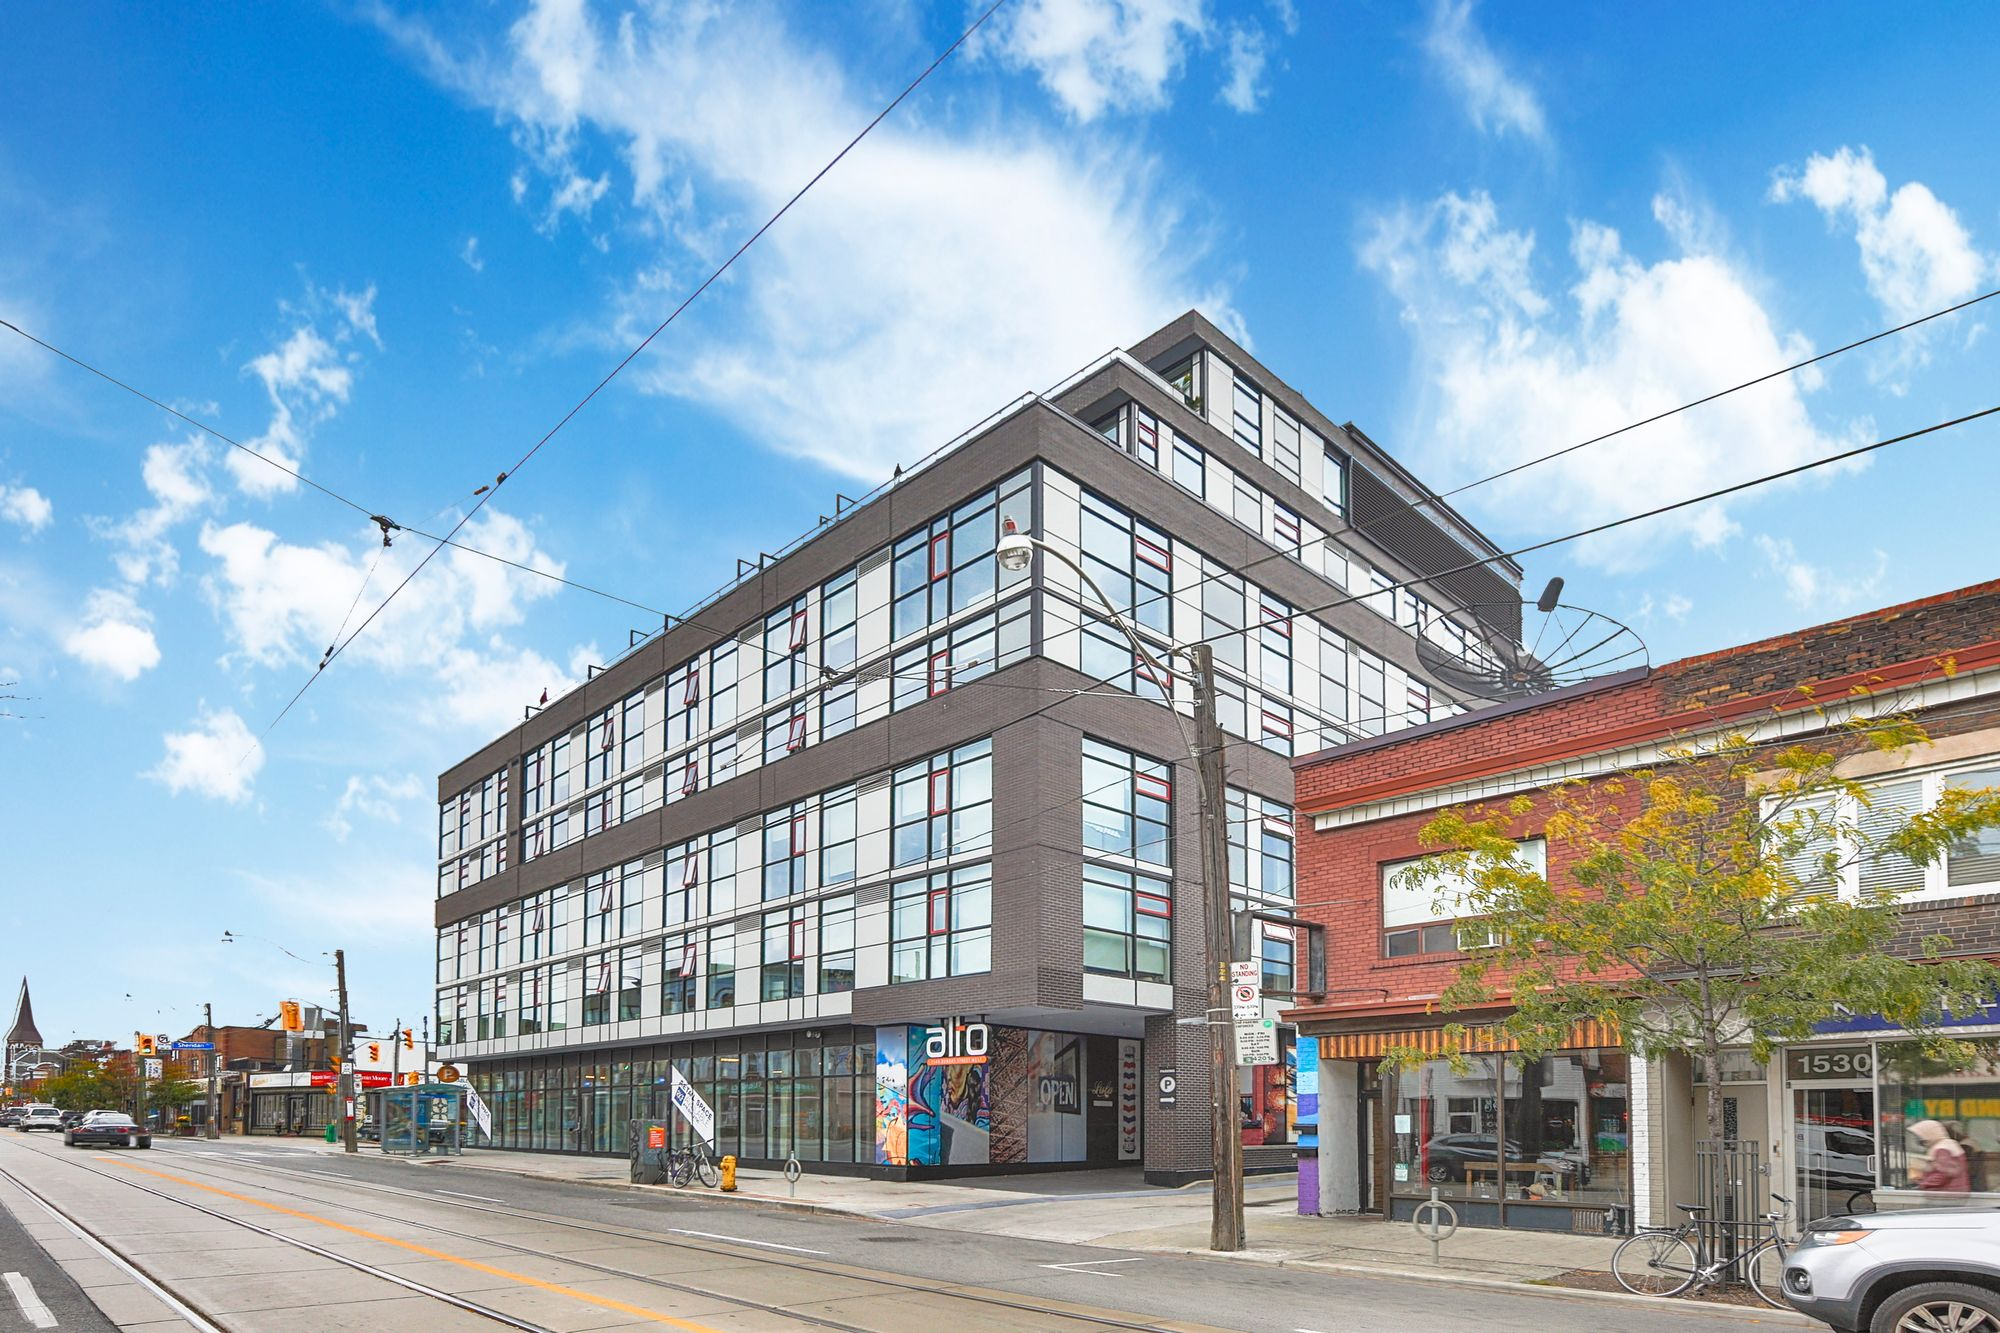 1544 Dundas St W. This condo at Alto is located in  West End, Toronto - image #1 of 4 by Strata.ca